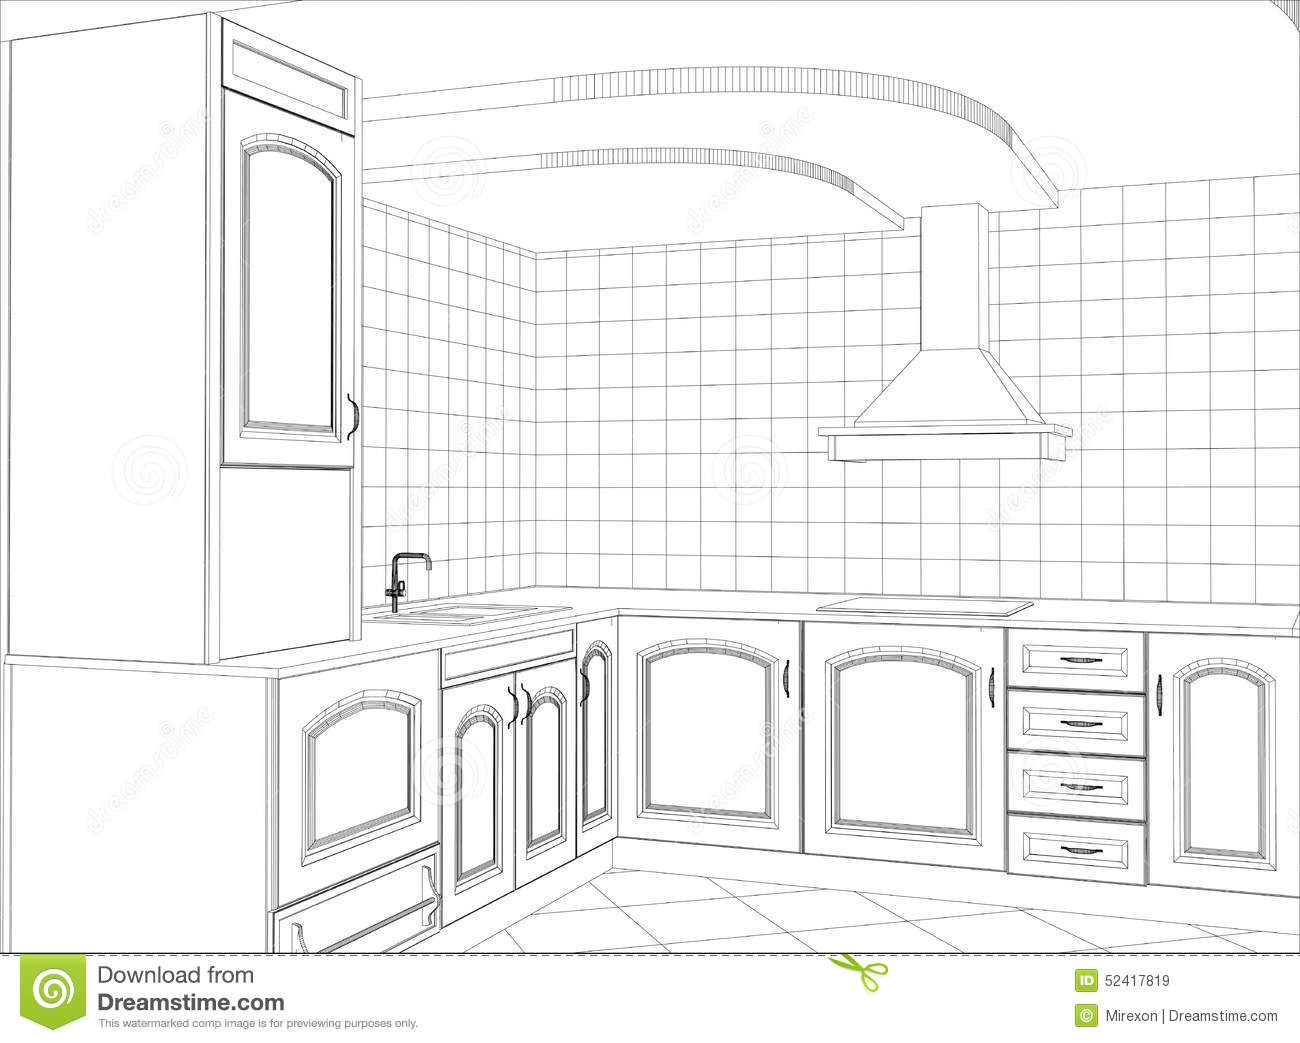 3d kitchen download amazing perfect home design